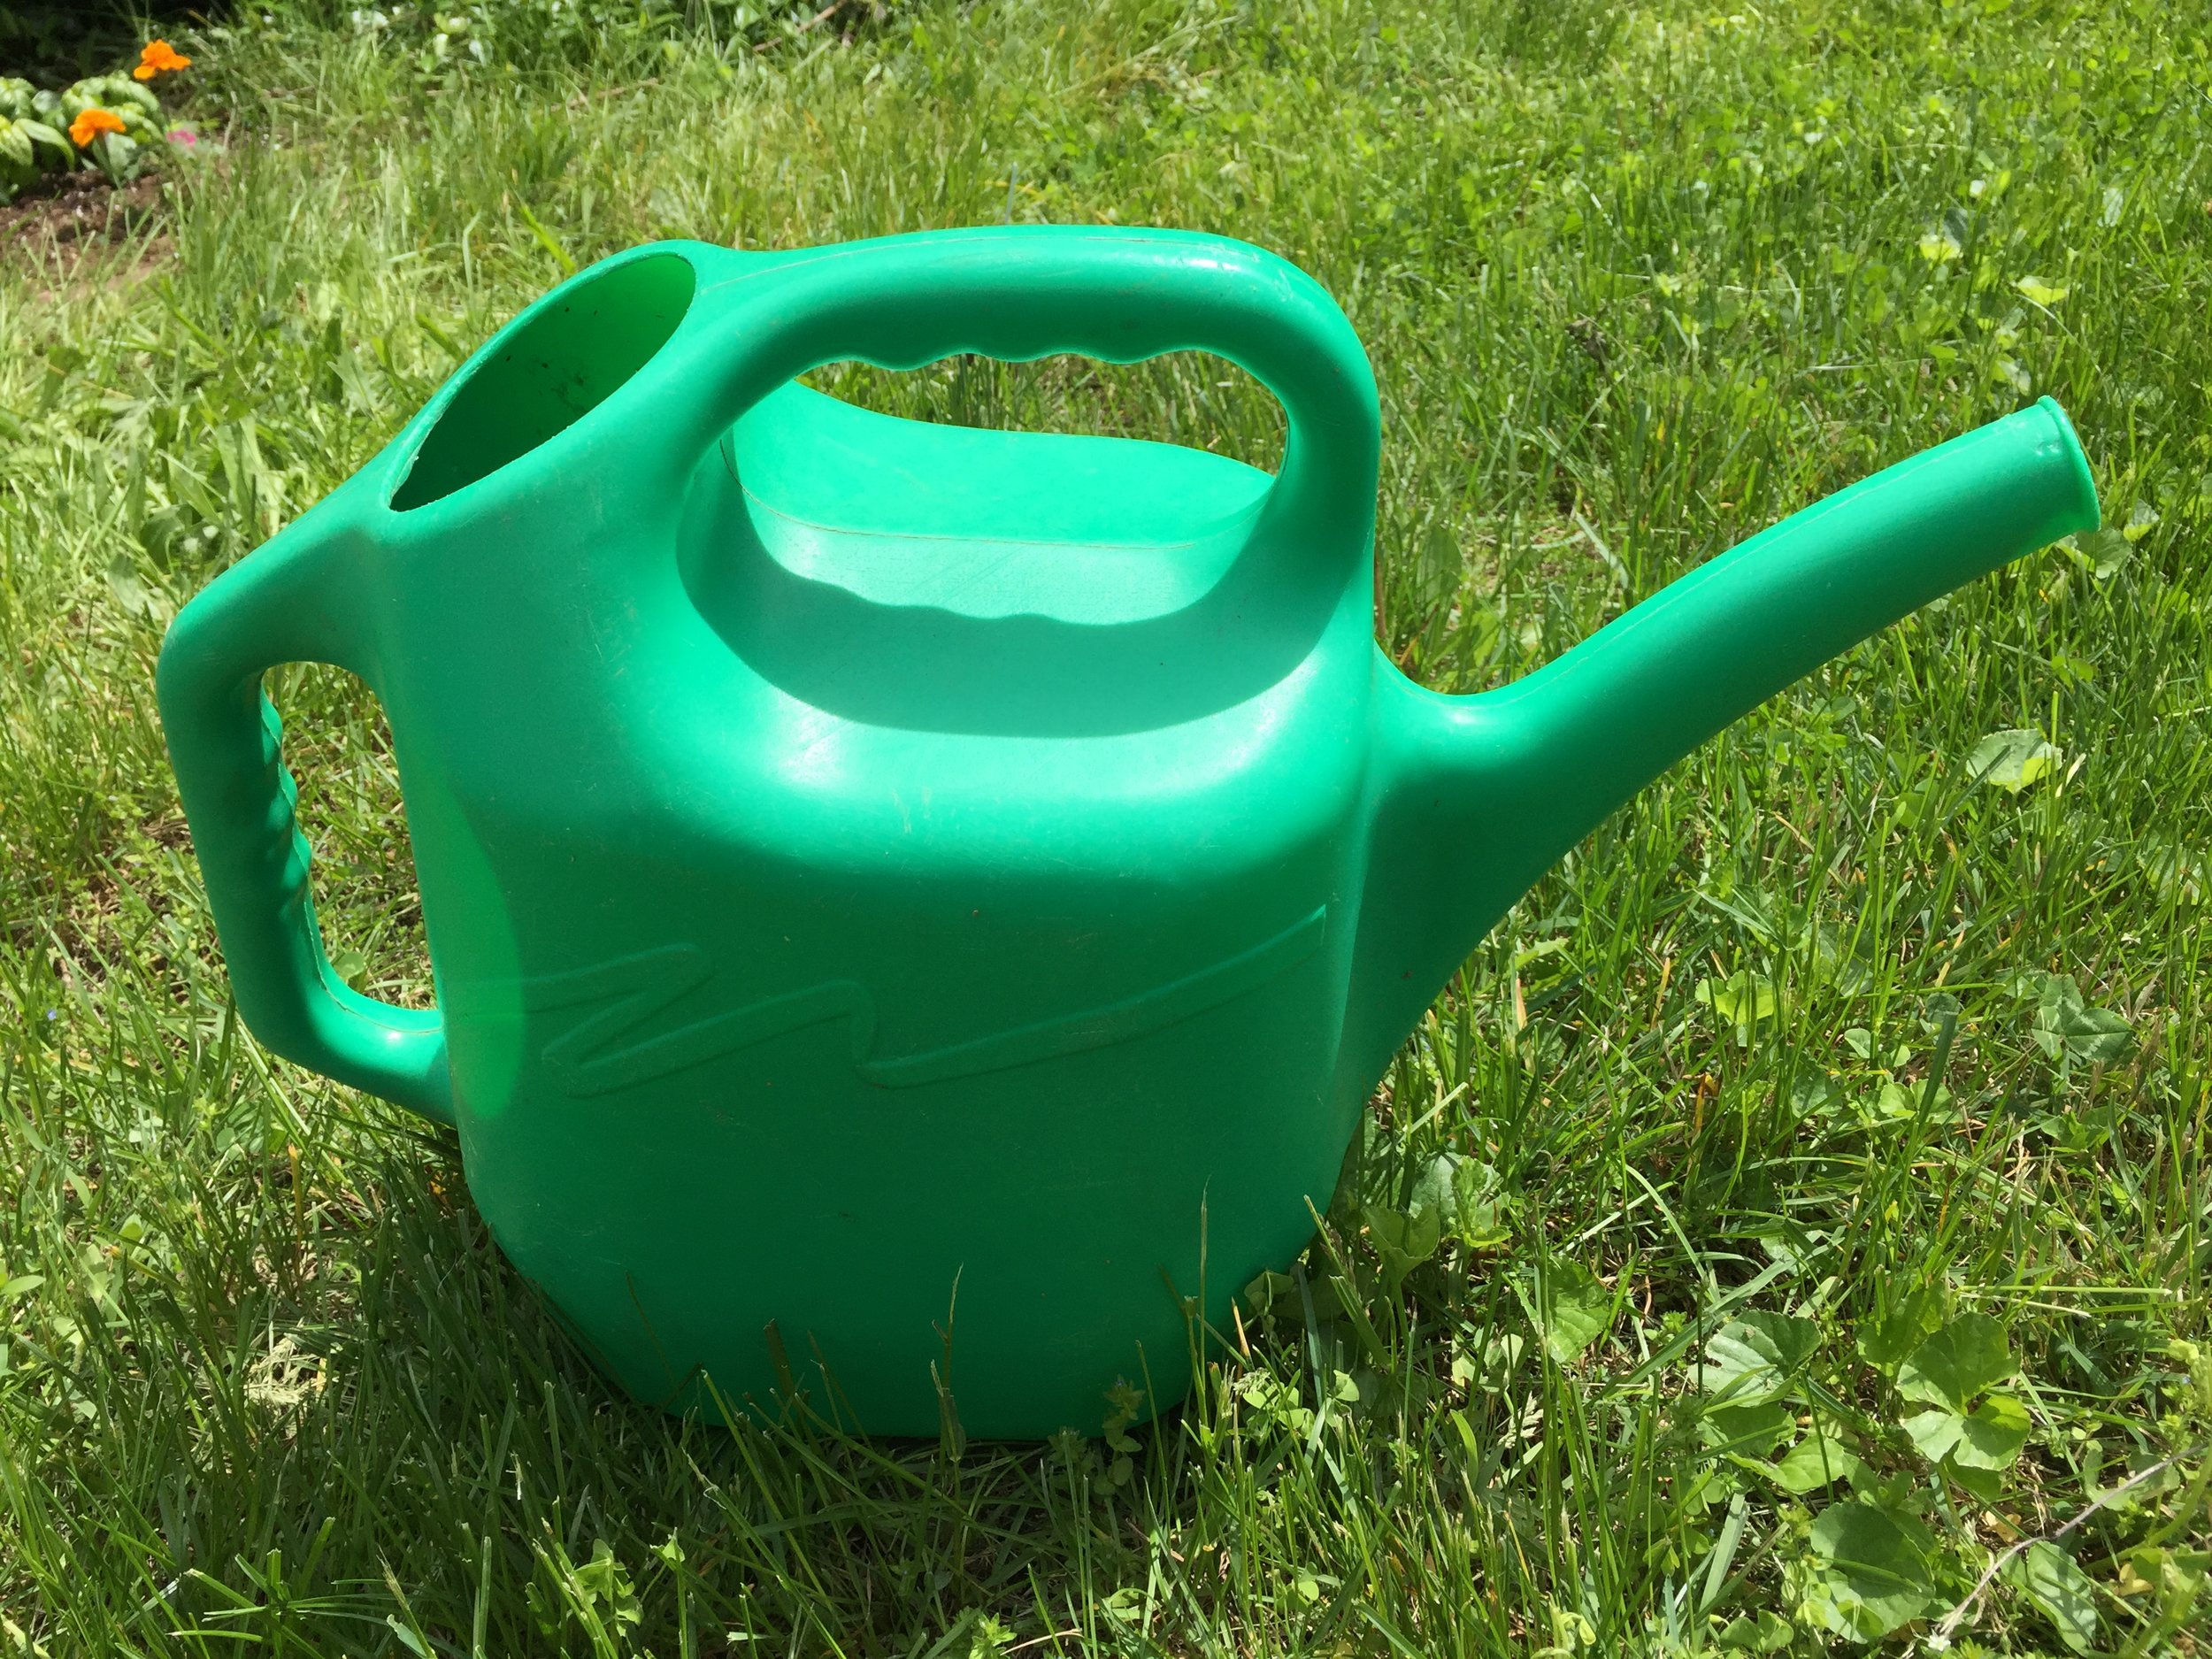 Watering my sunflowers every day with my trusty green watering can!